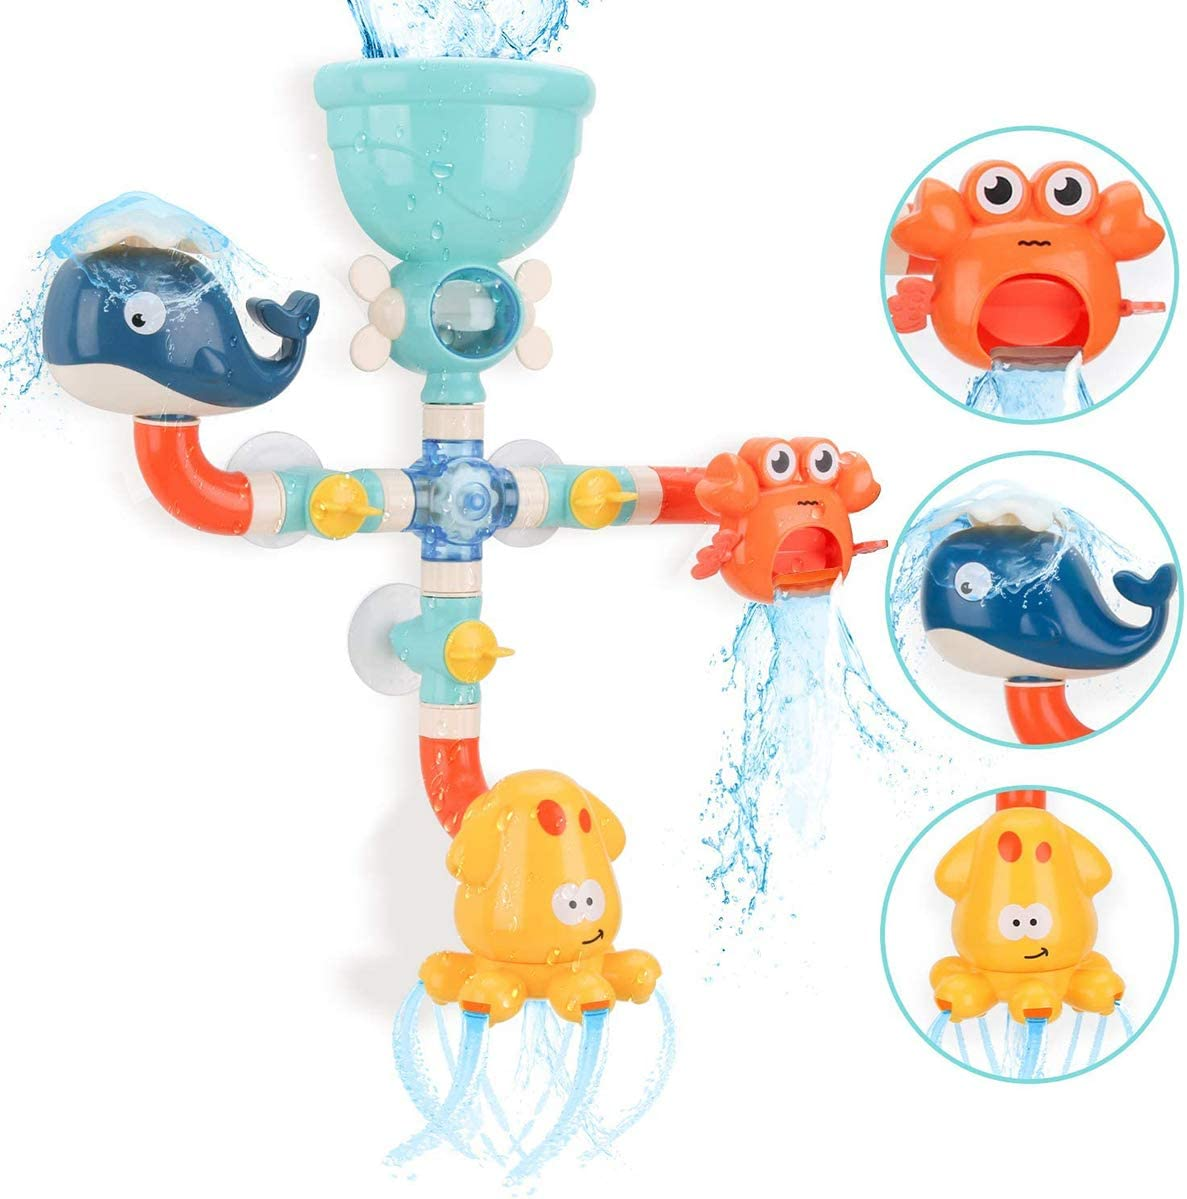 Bath Toys with Fun Widgets Spinning Gear Shower Bath Game Waterfall Water Station Bath Wall Bathtub Toys Gift for 2 3 4 5 Years Old Boys Girls